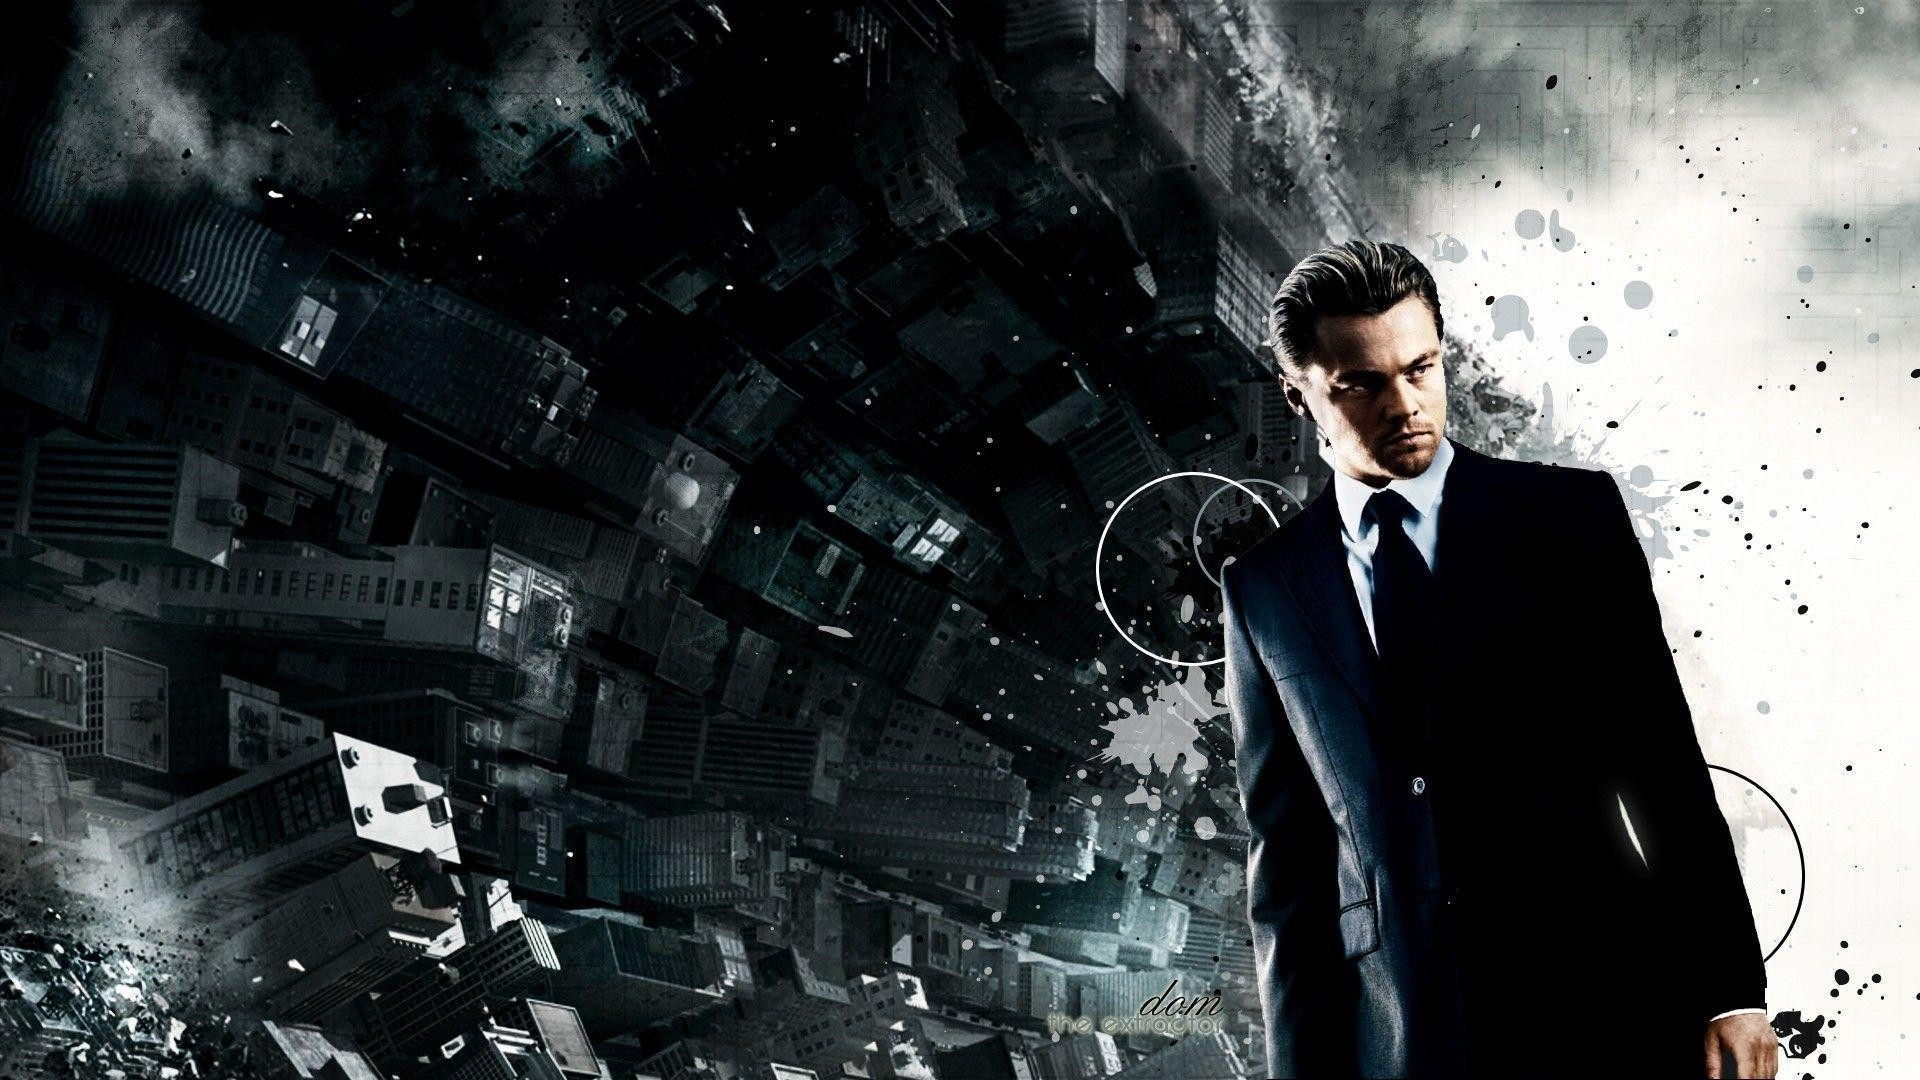 Inception Wallpaper Image